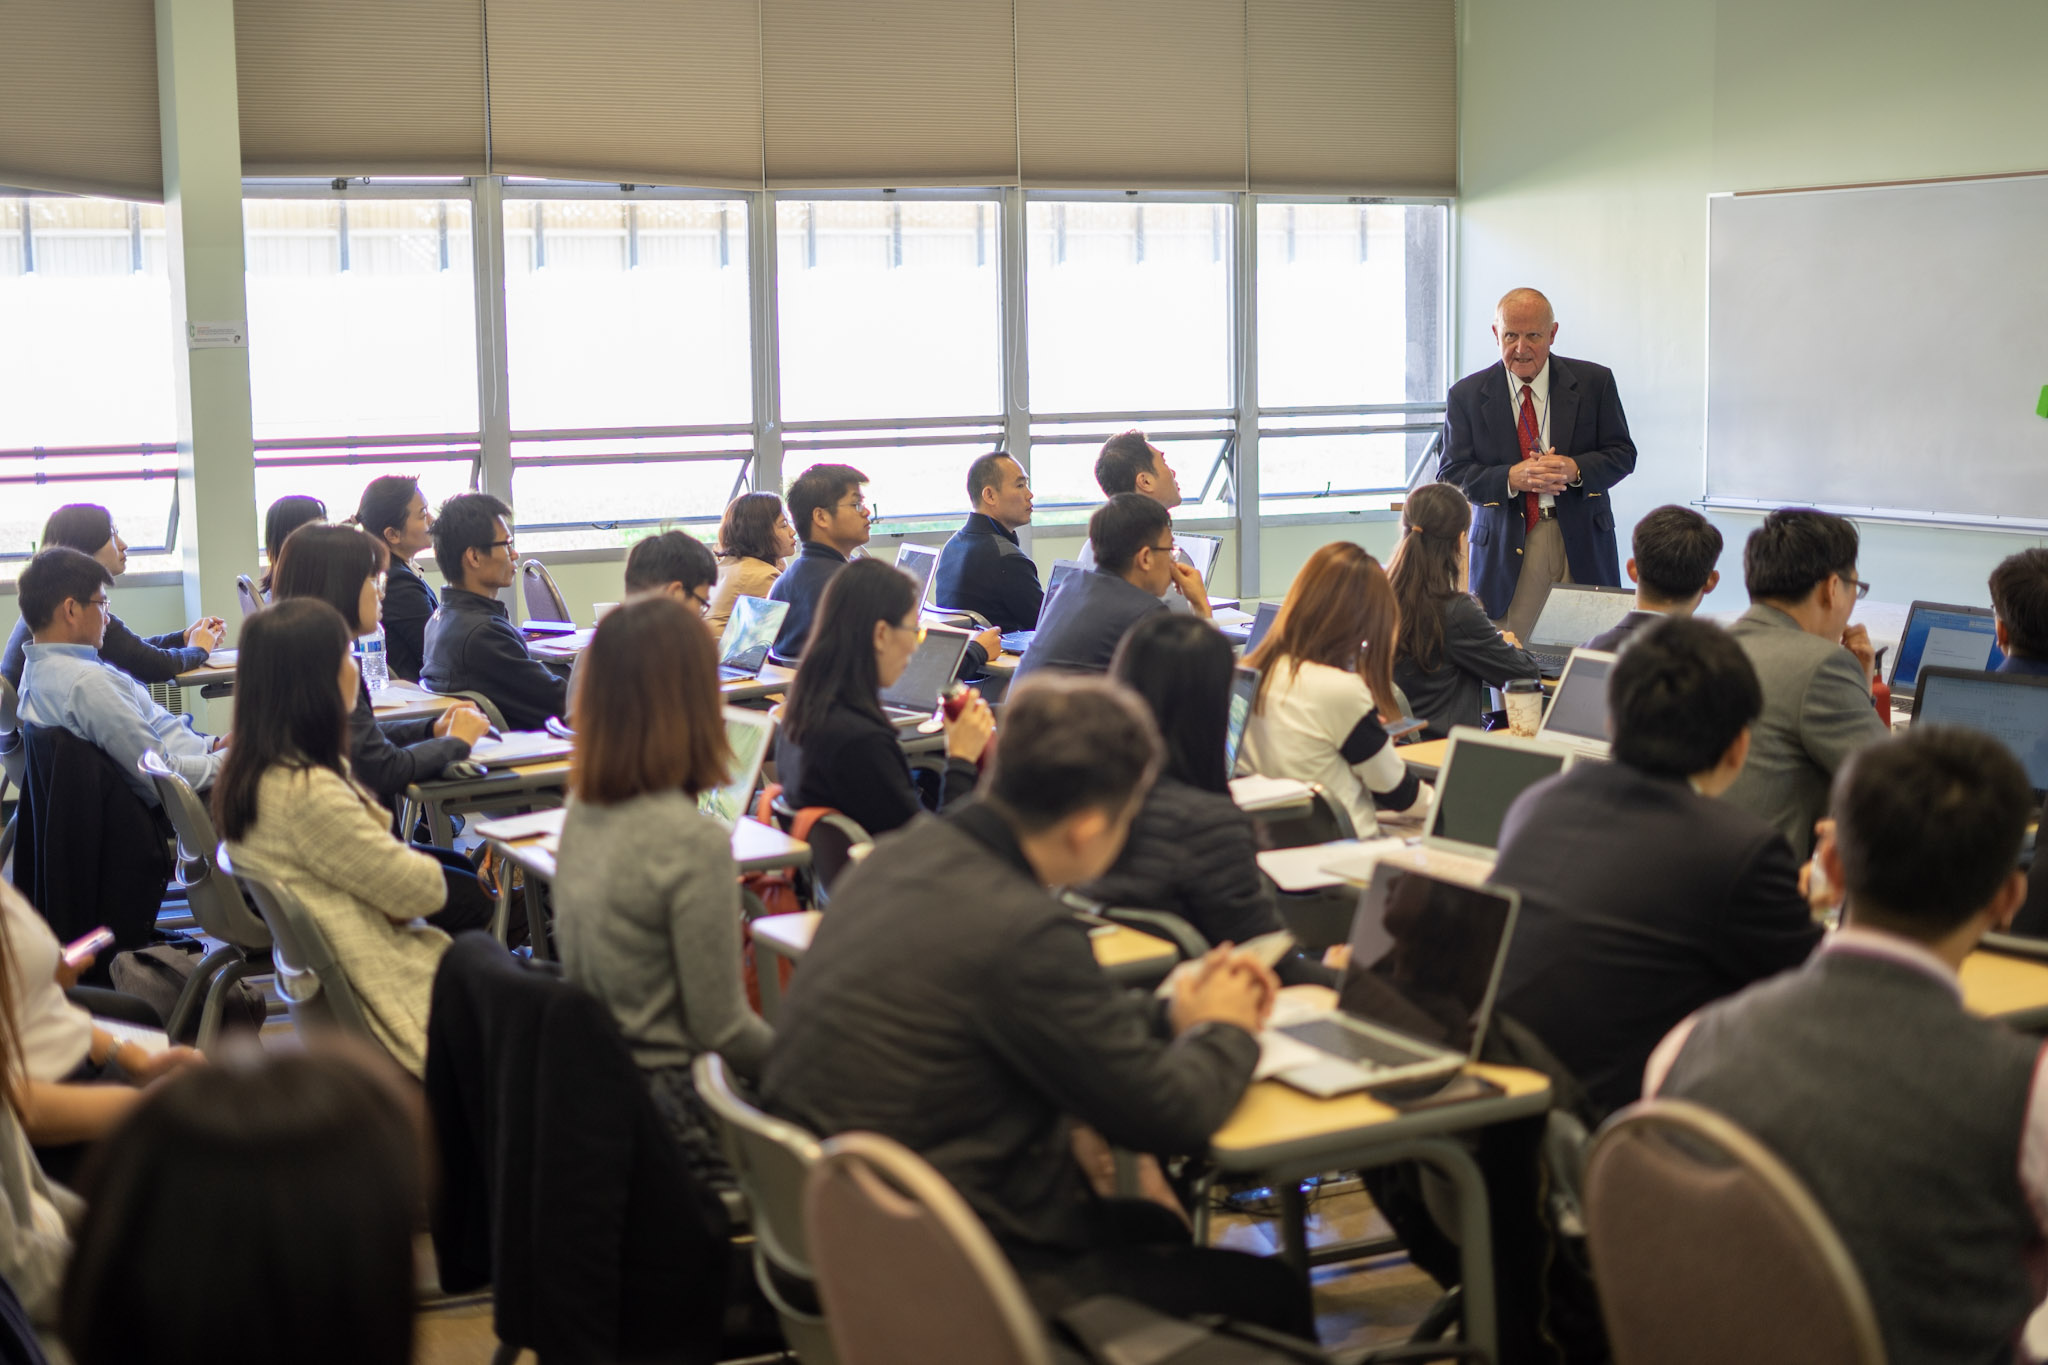 olivet-university-2019-doctoral-colloquium-kicks-off-at-san-francisco-campus